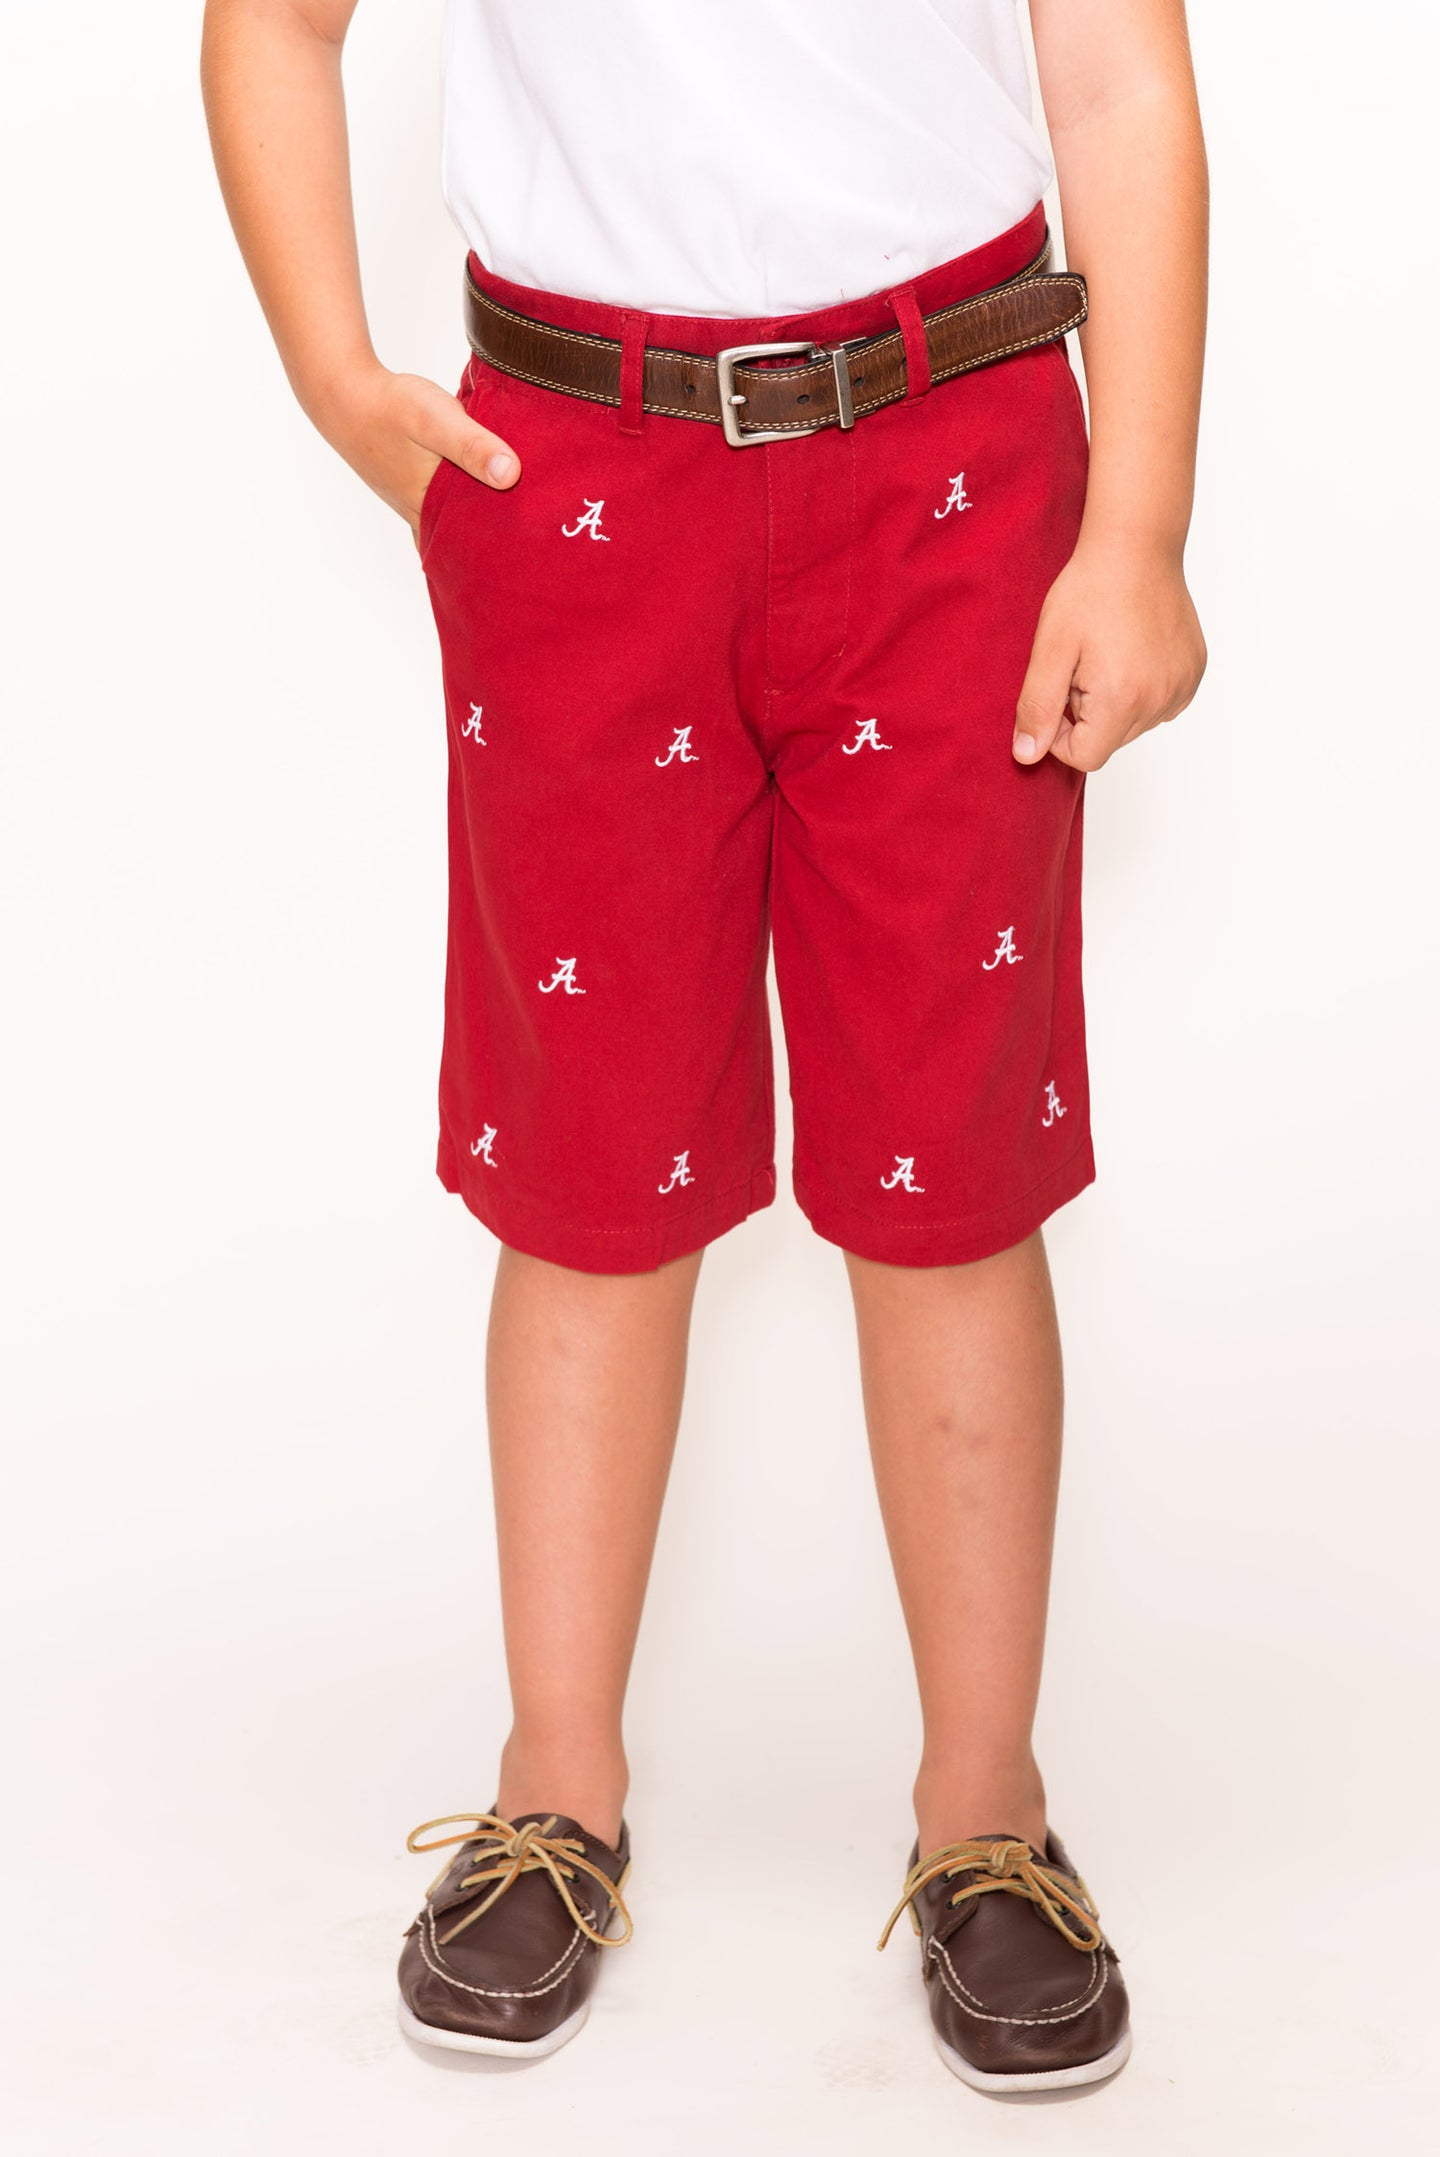 Alabama Boy's Crimson Short